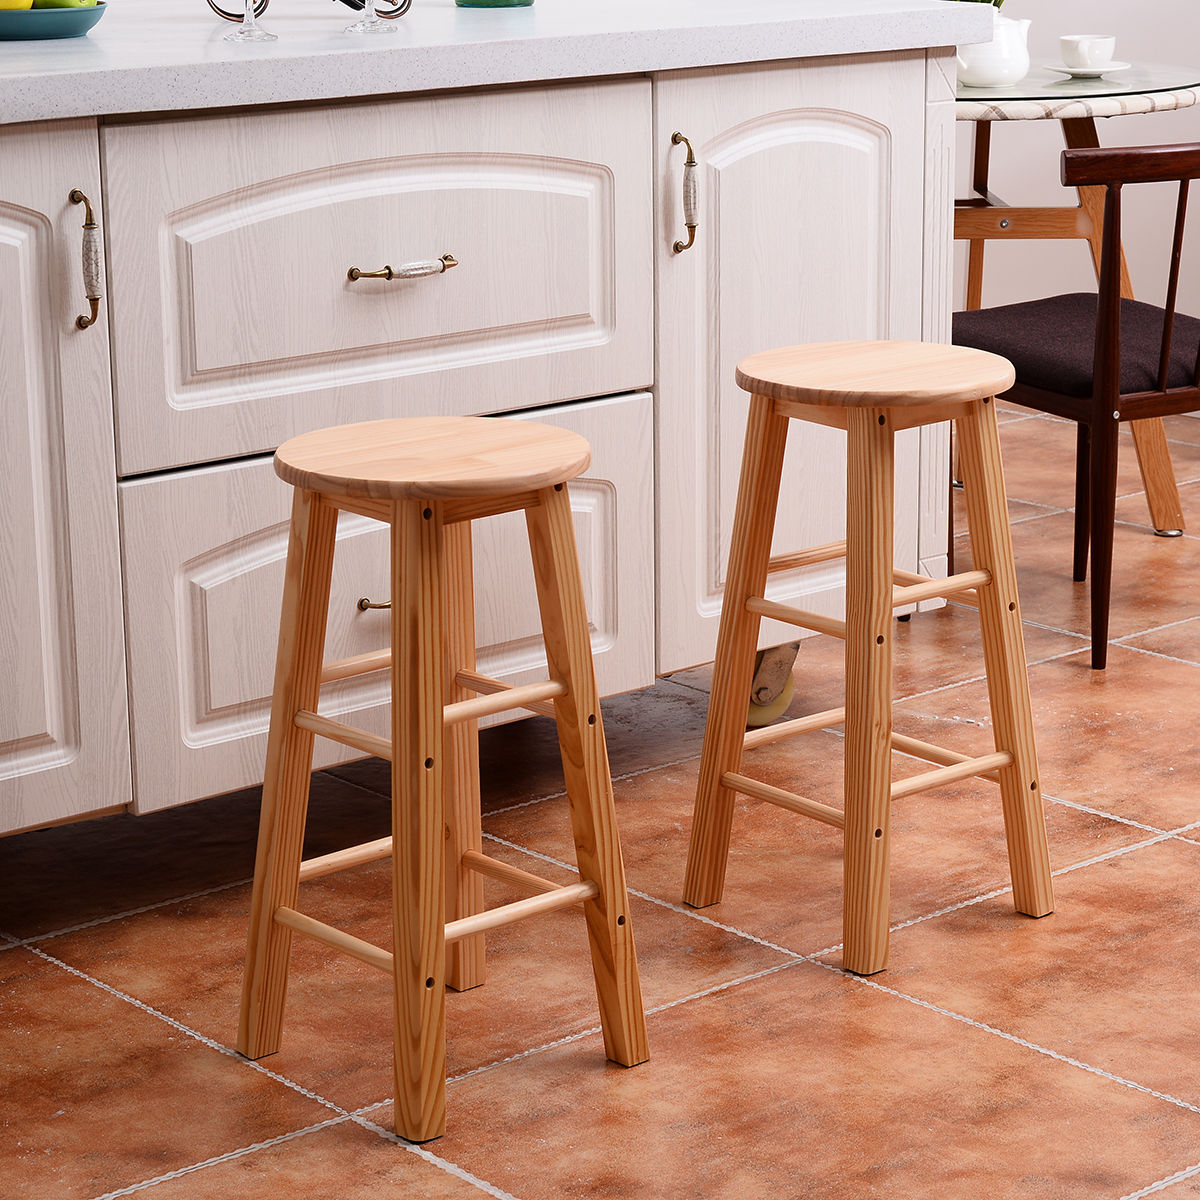 24 inch counter chairs church direct set of 2 wood stools bar dining kitchen